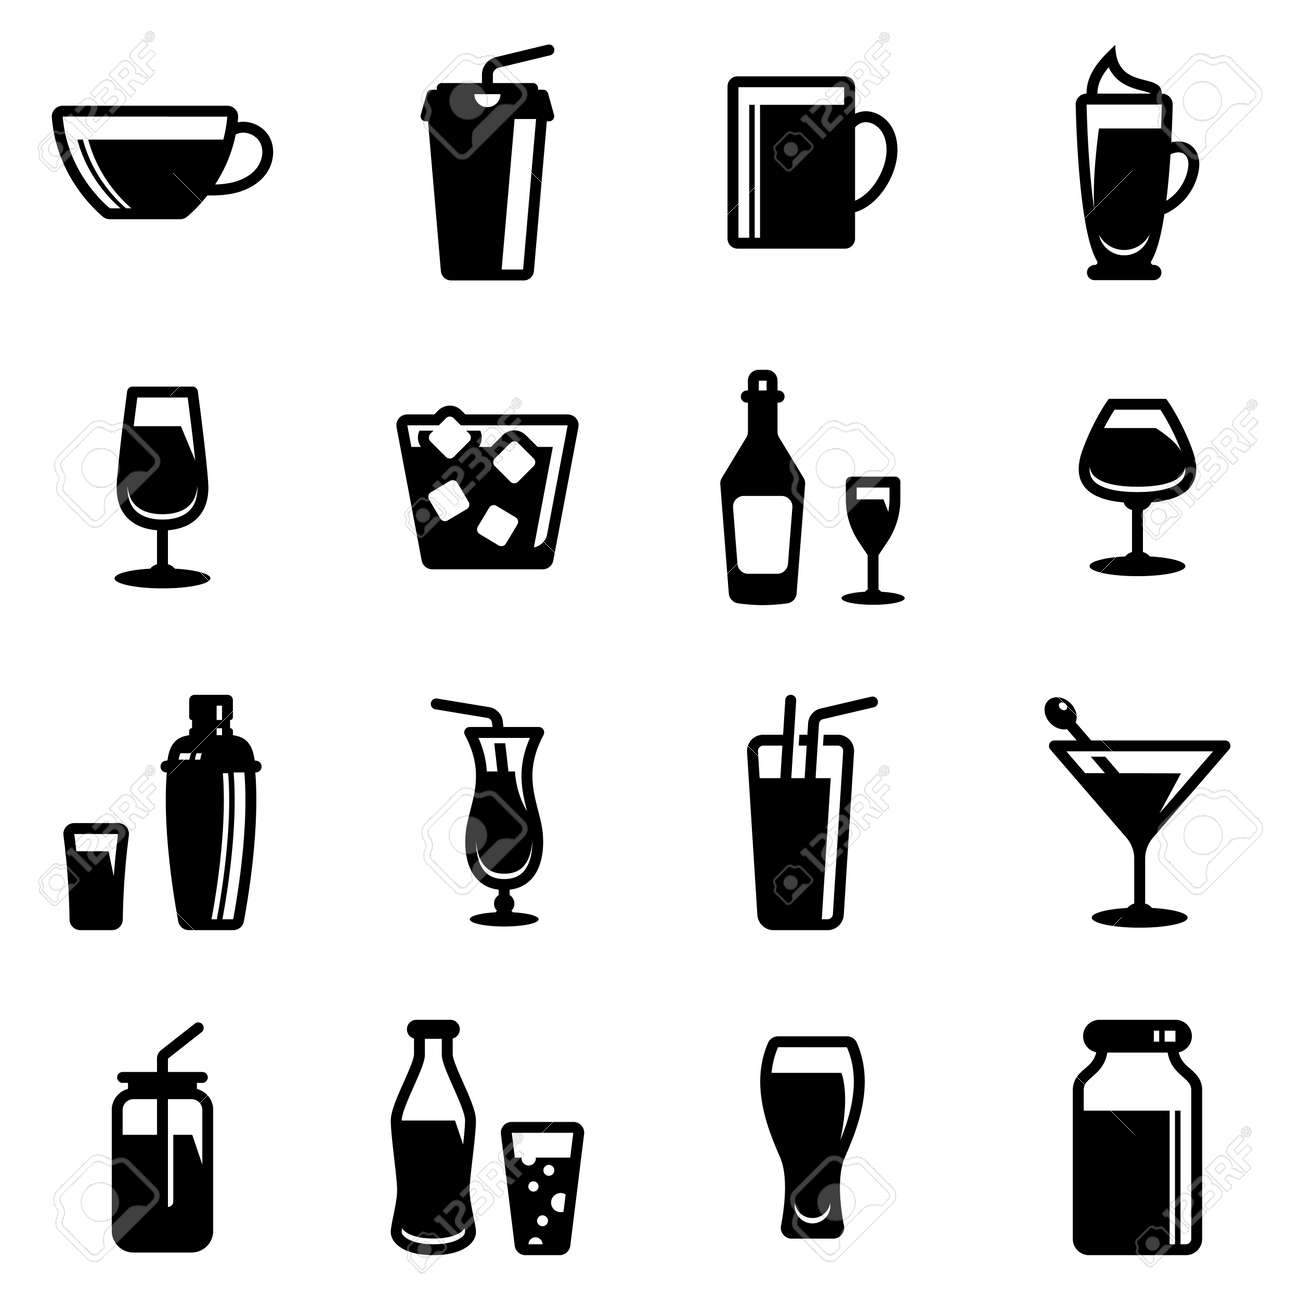 Set of simple icons on a theme Restaurant, alcohol, glass, dishes, drinks, bar, cold, hot, strong, vector, set. Black icons isolated against white background - 159106343